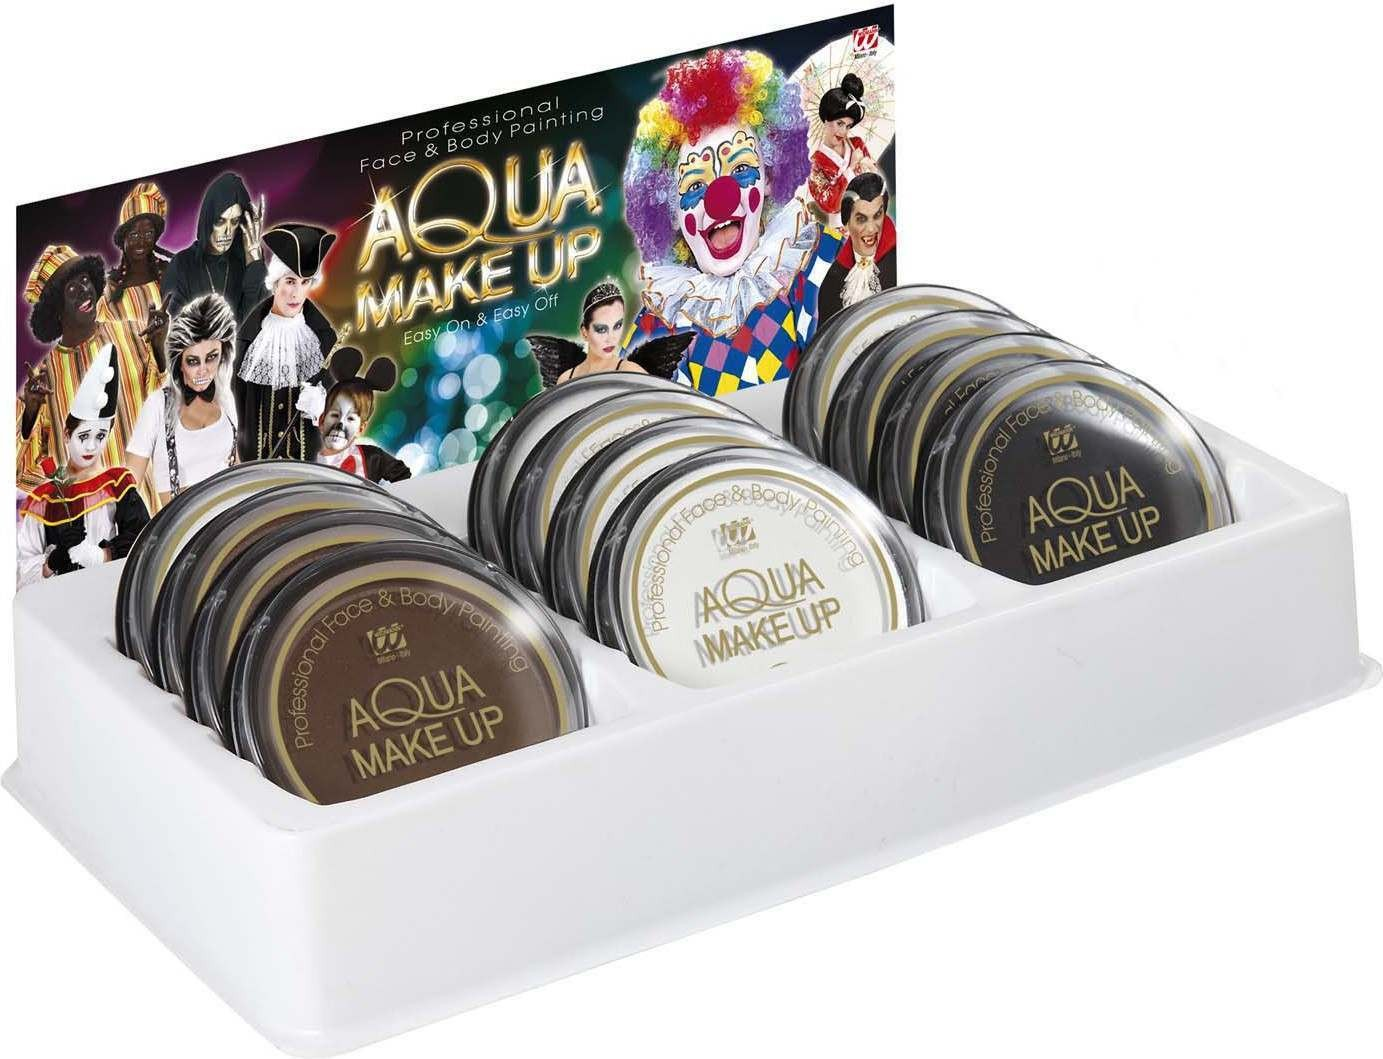 Aqua Makeup 30G - Display Of 12 (6 White 3 Black 3 Brown) Makeup